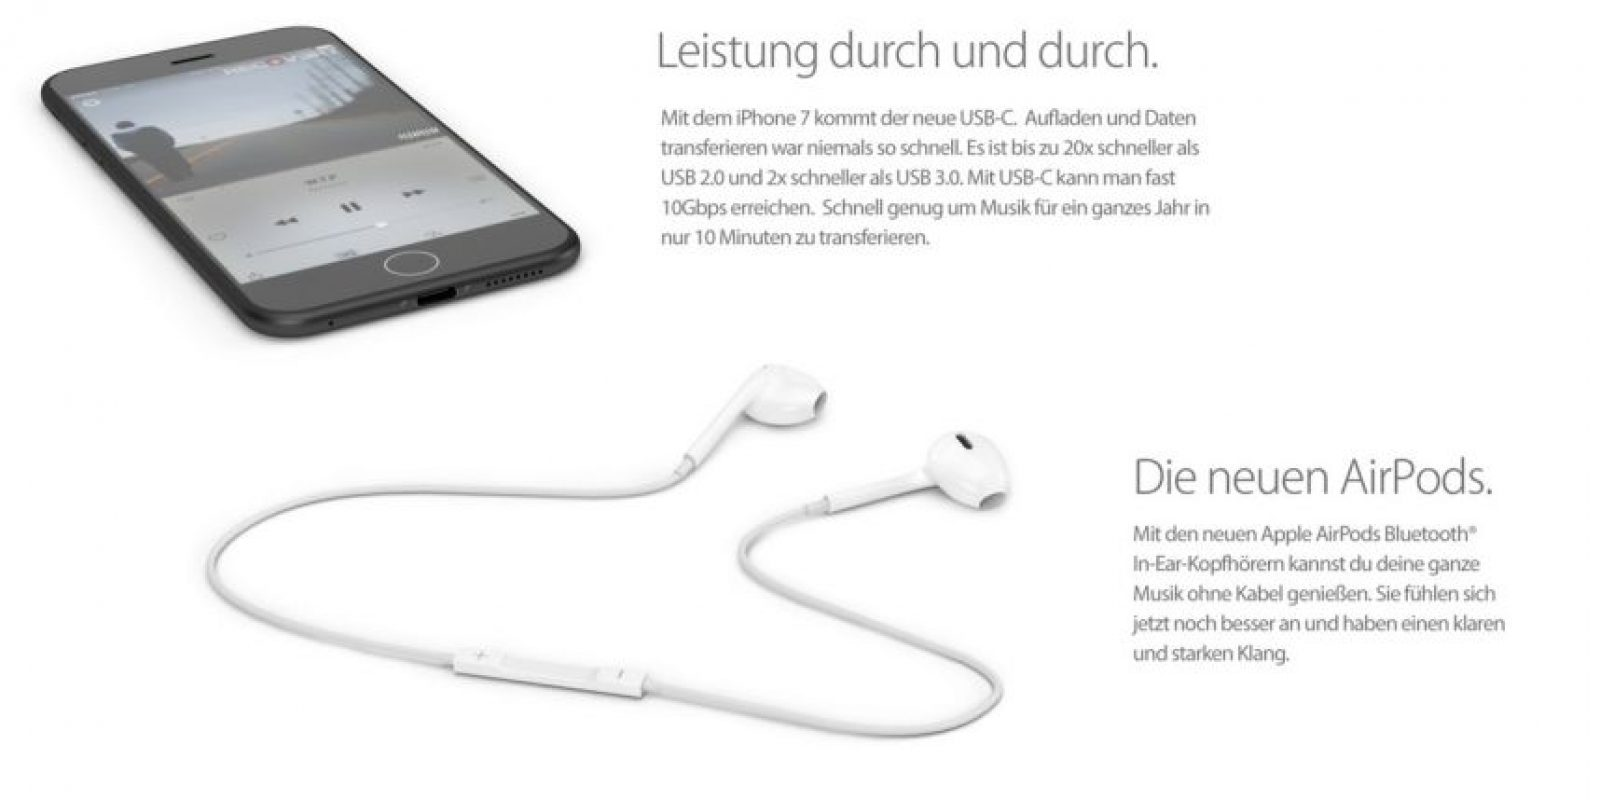 iPhone 7 no tendría entrada para auriculares. Foto: vía handy-abovergleich.ch